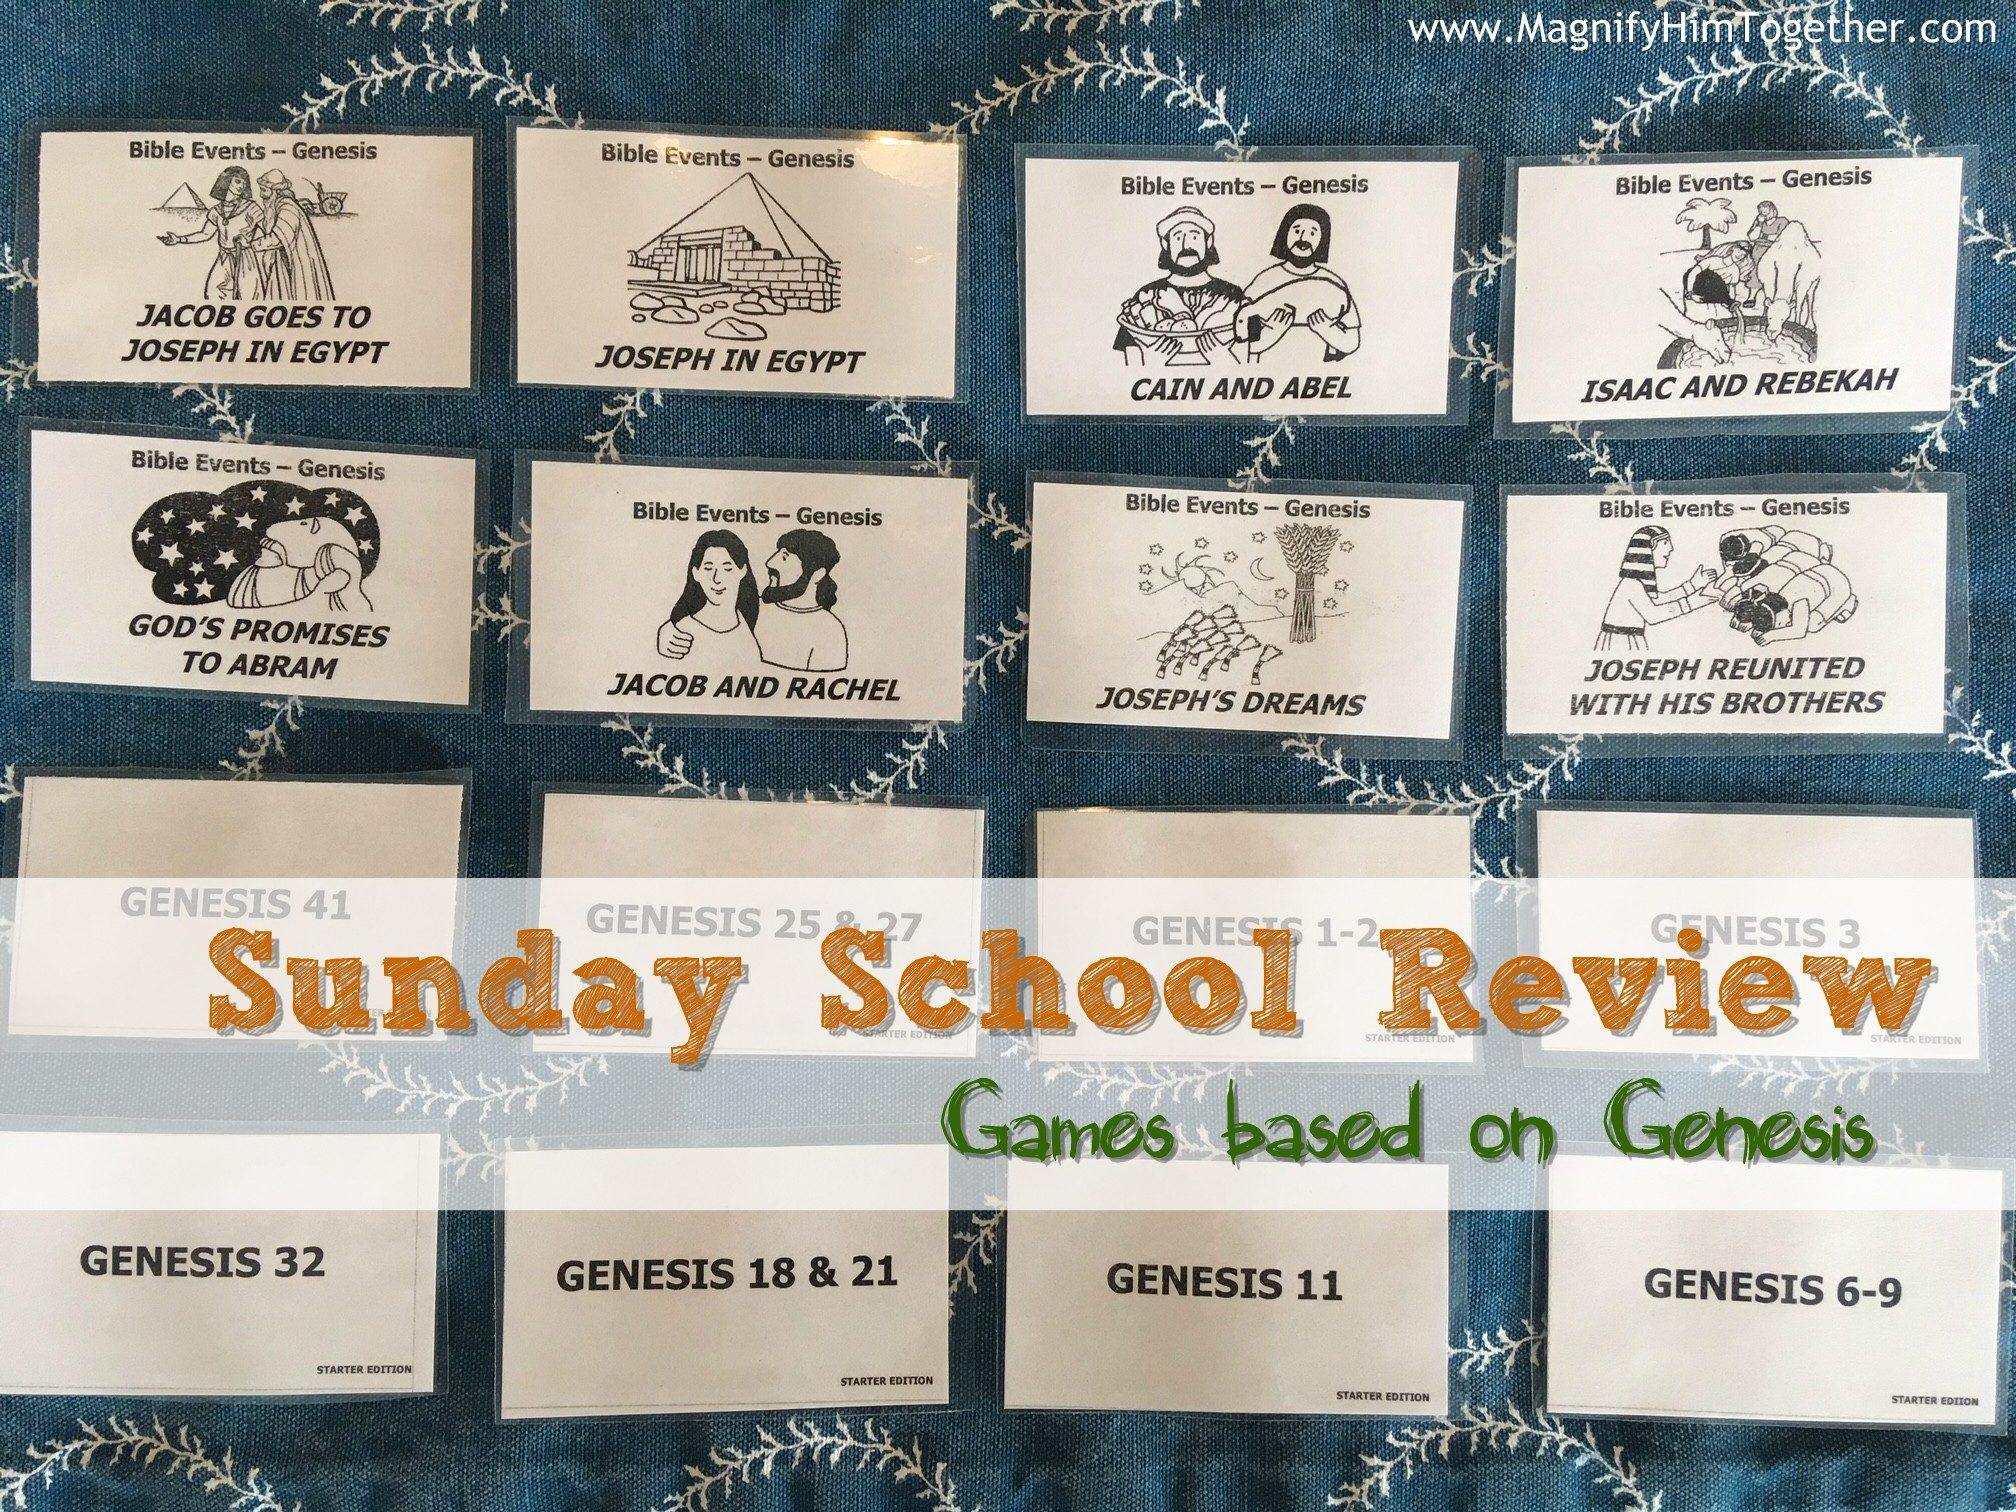 Sunday School Review – Genesis Games – Magnify Him Together